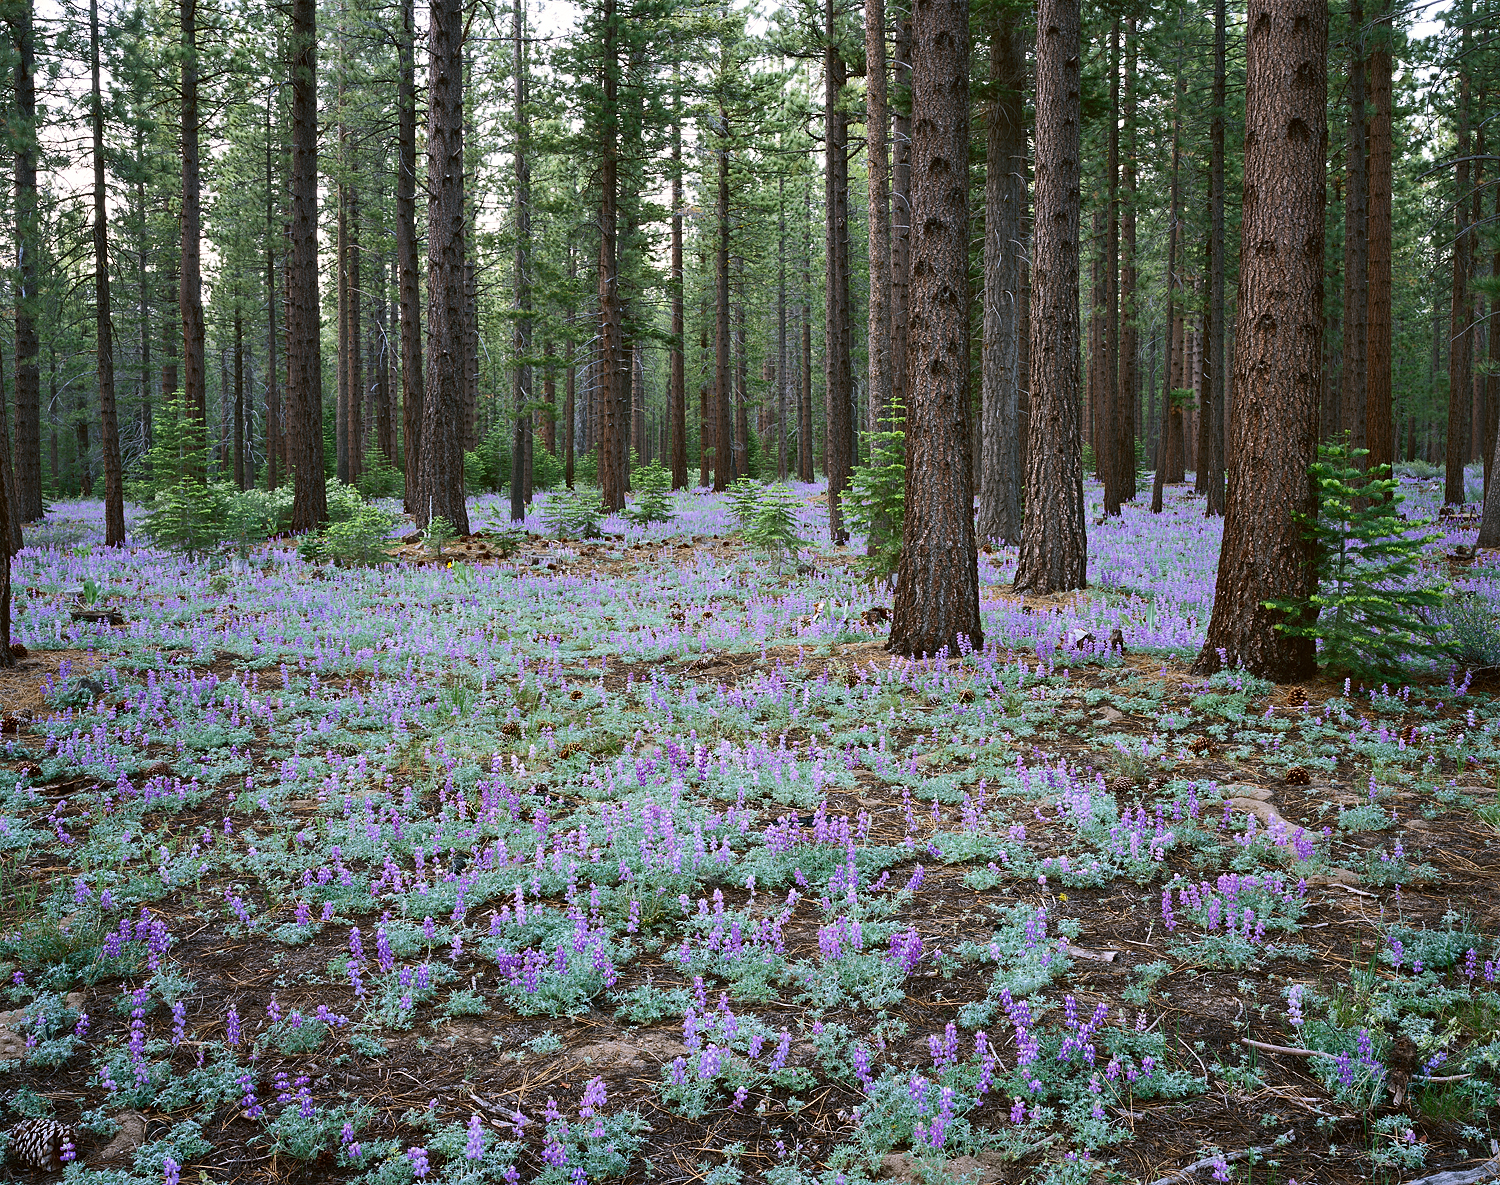 Dwarf Lupine and Pine Forest